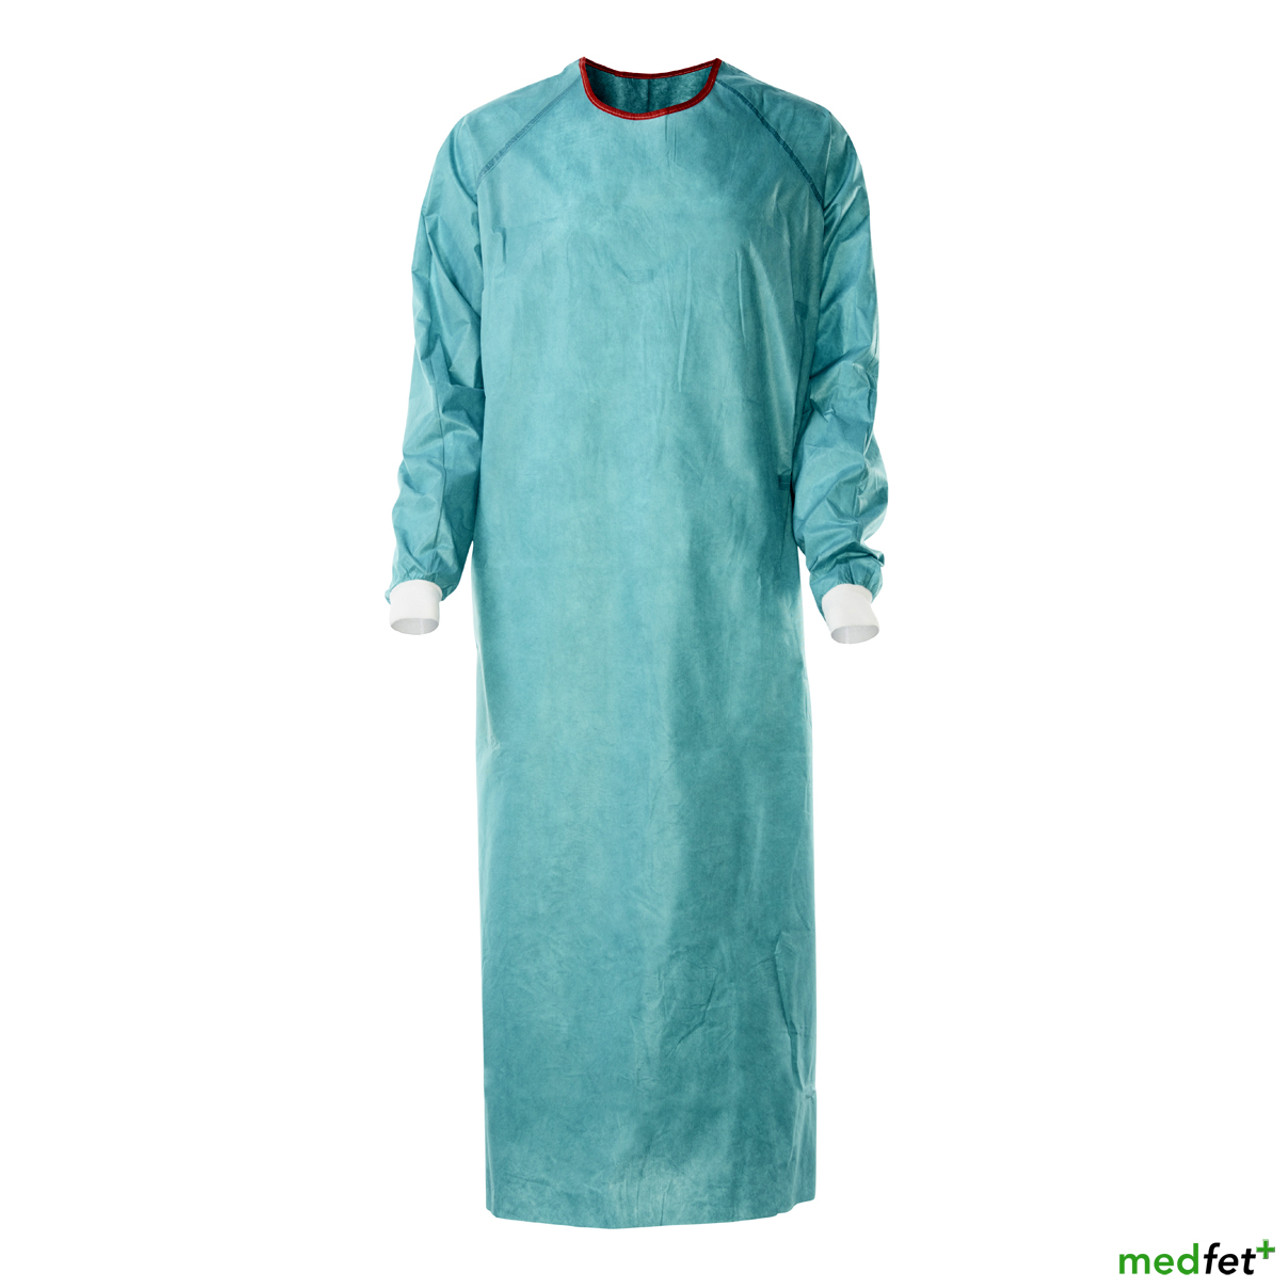 Reinforced Surgical Gown (Sterile) - MedFetUK